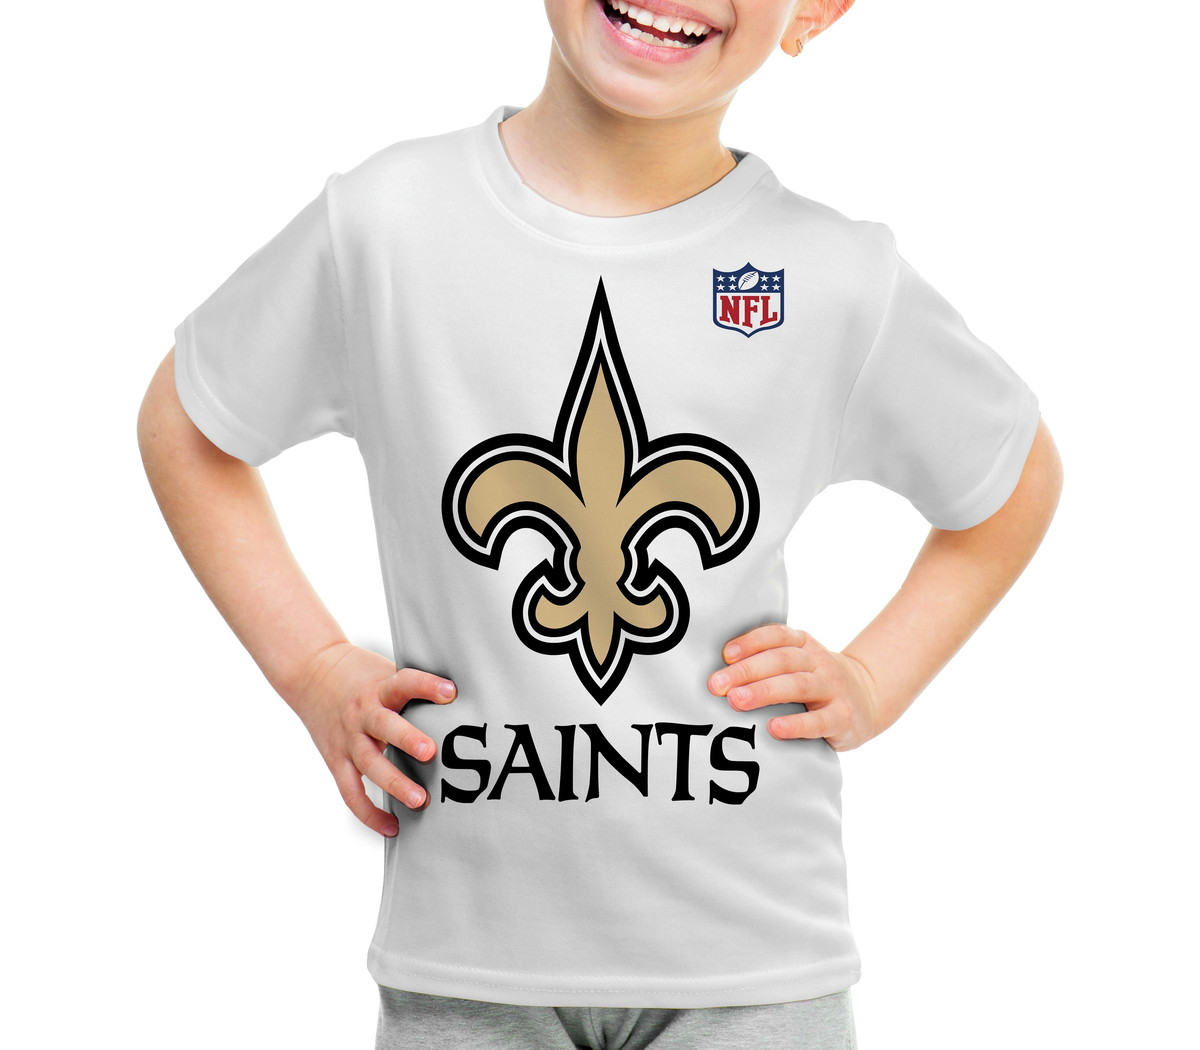 7fdbb996f Camiseta Infantil New Orleans Saints NFL - A3 no Elo7